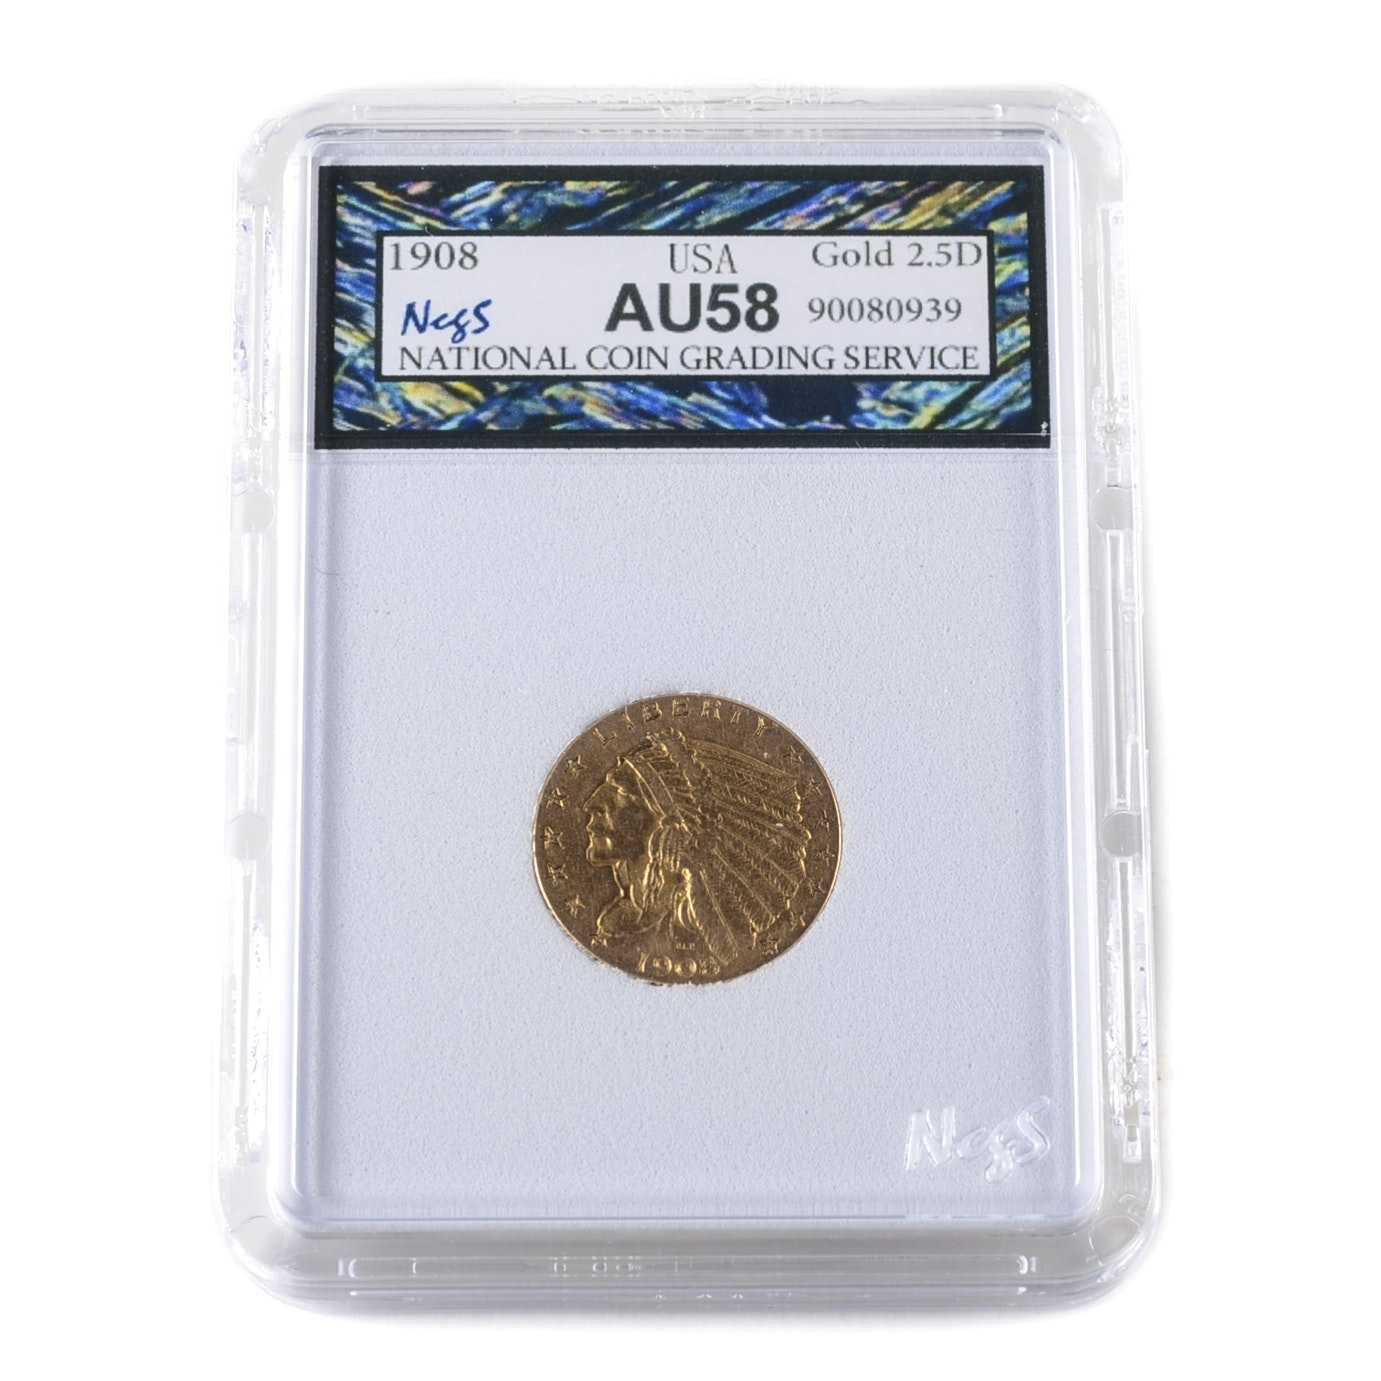 Graded AU58 (By NCGS) 1908 Indian Head $2 1/2 Gold Coin